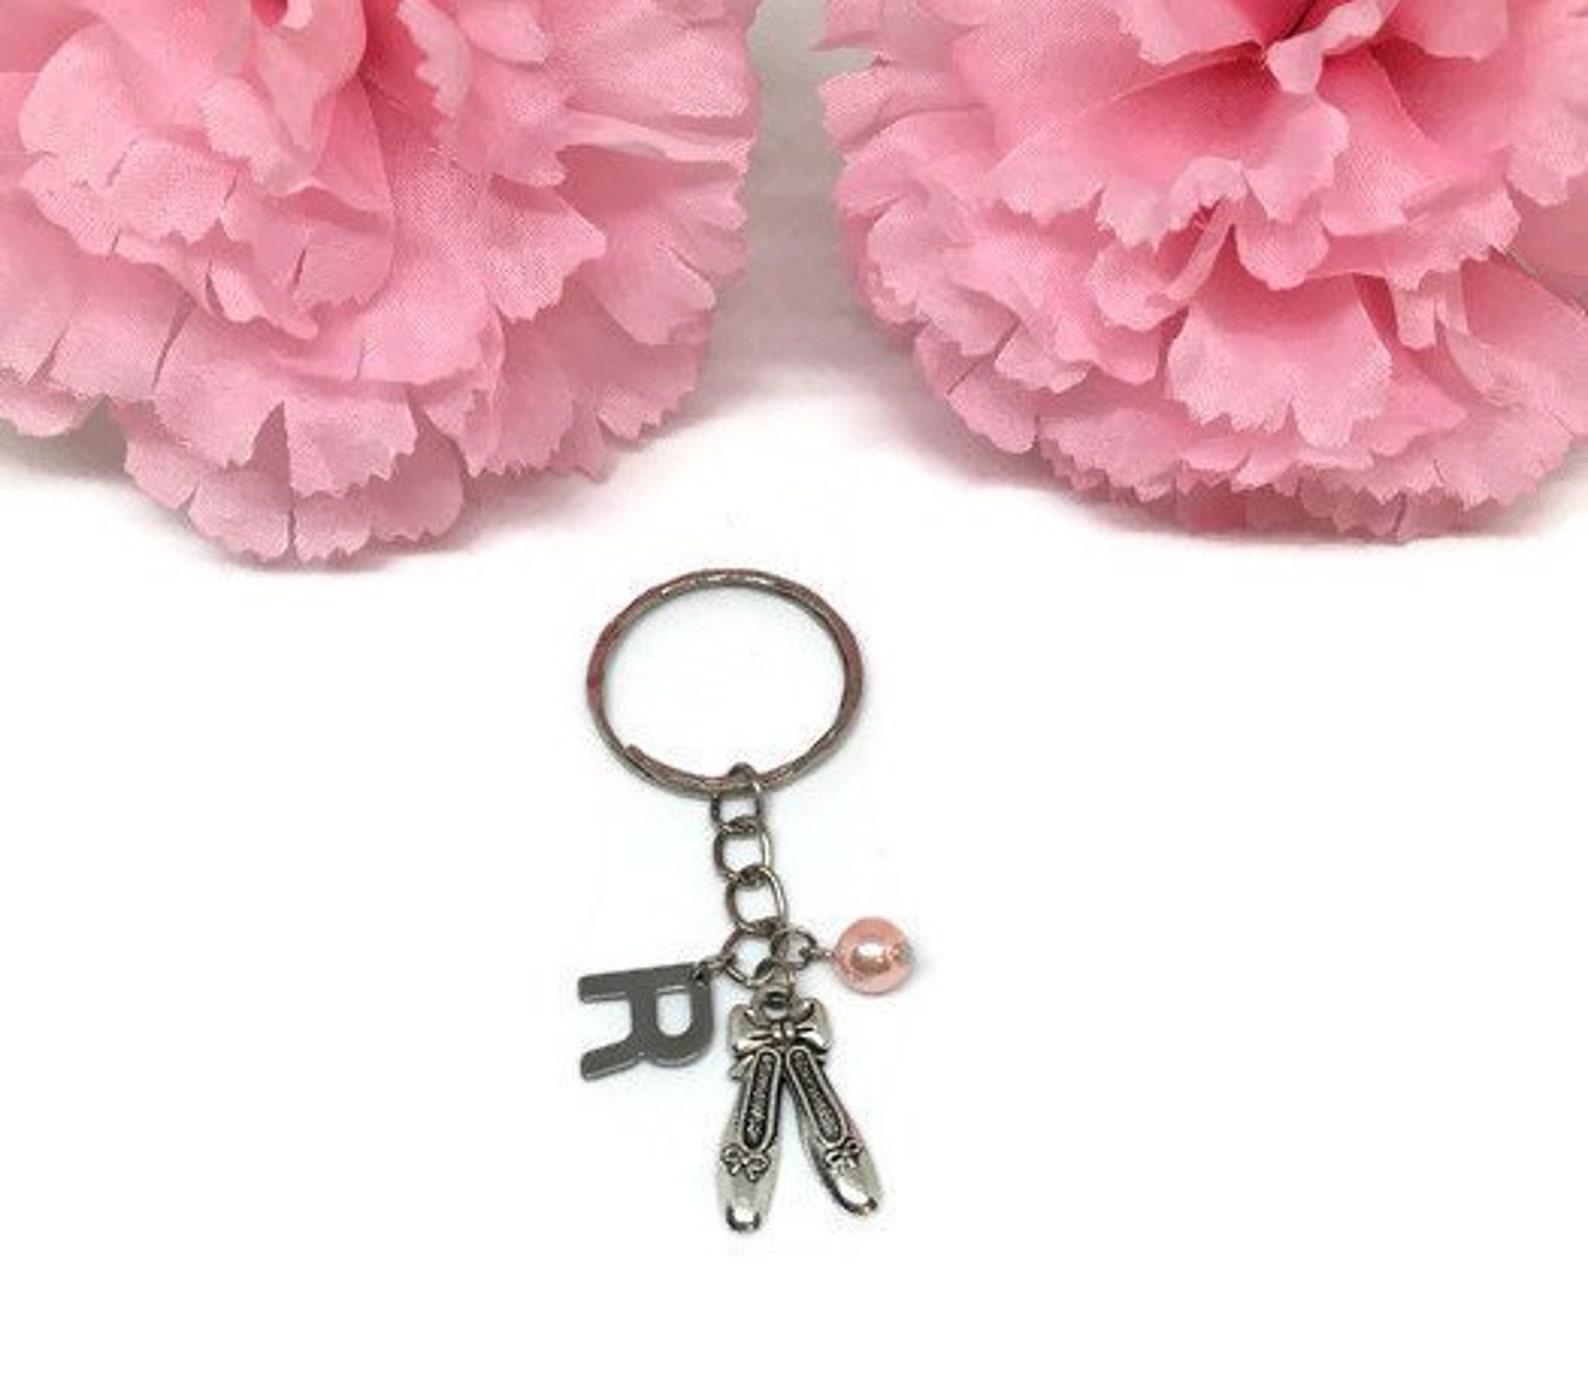 ballet shoe keychain ballet slippers keychain personalized keychain silver keyring custom keychain ballerina keychain ballet gif